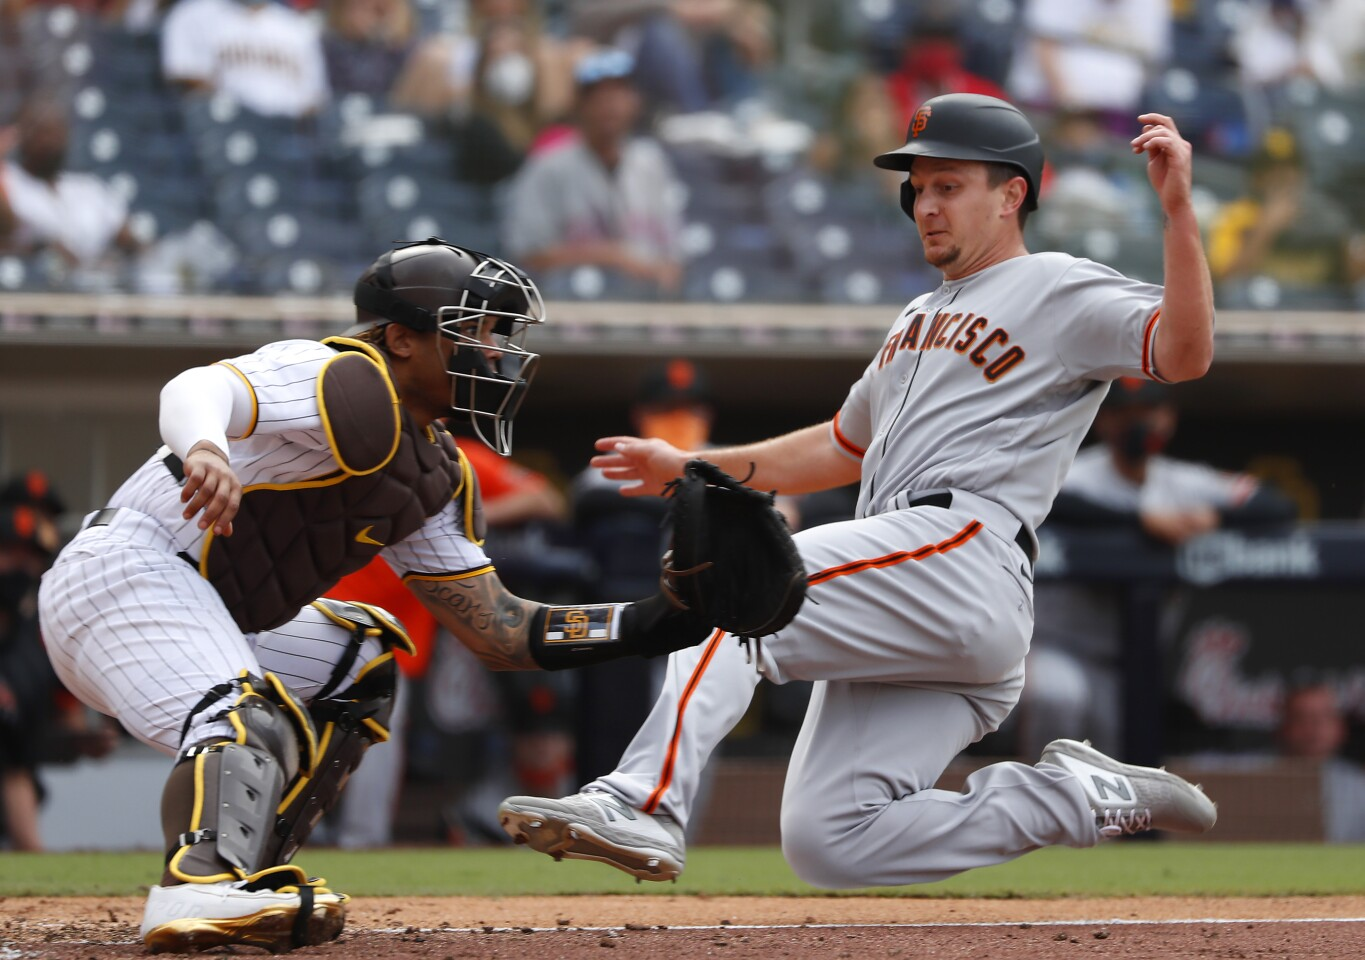 SAN DIEGO, CA - APRIL 7: San Diego Padres' Luis Campusano can't make the tag in time as San Francisco Giants' Alex Dickerson slides in for the game-winning run in the 10th inning at Petco Park on Wednesday, April 7, 2021 in San Diego, CA. (K.C. Alfred / The San Diego Union-Tribune)